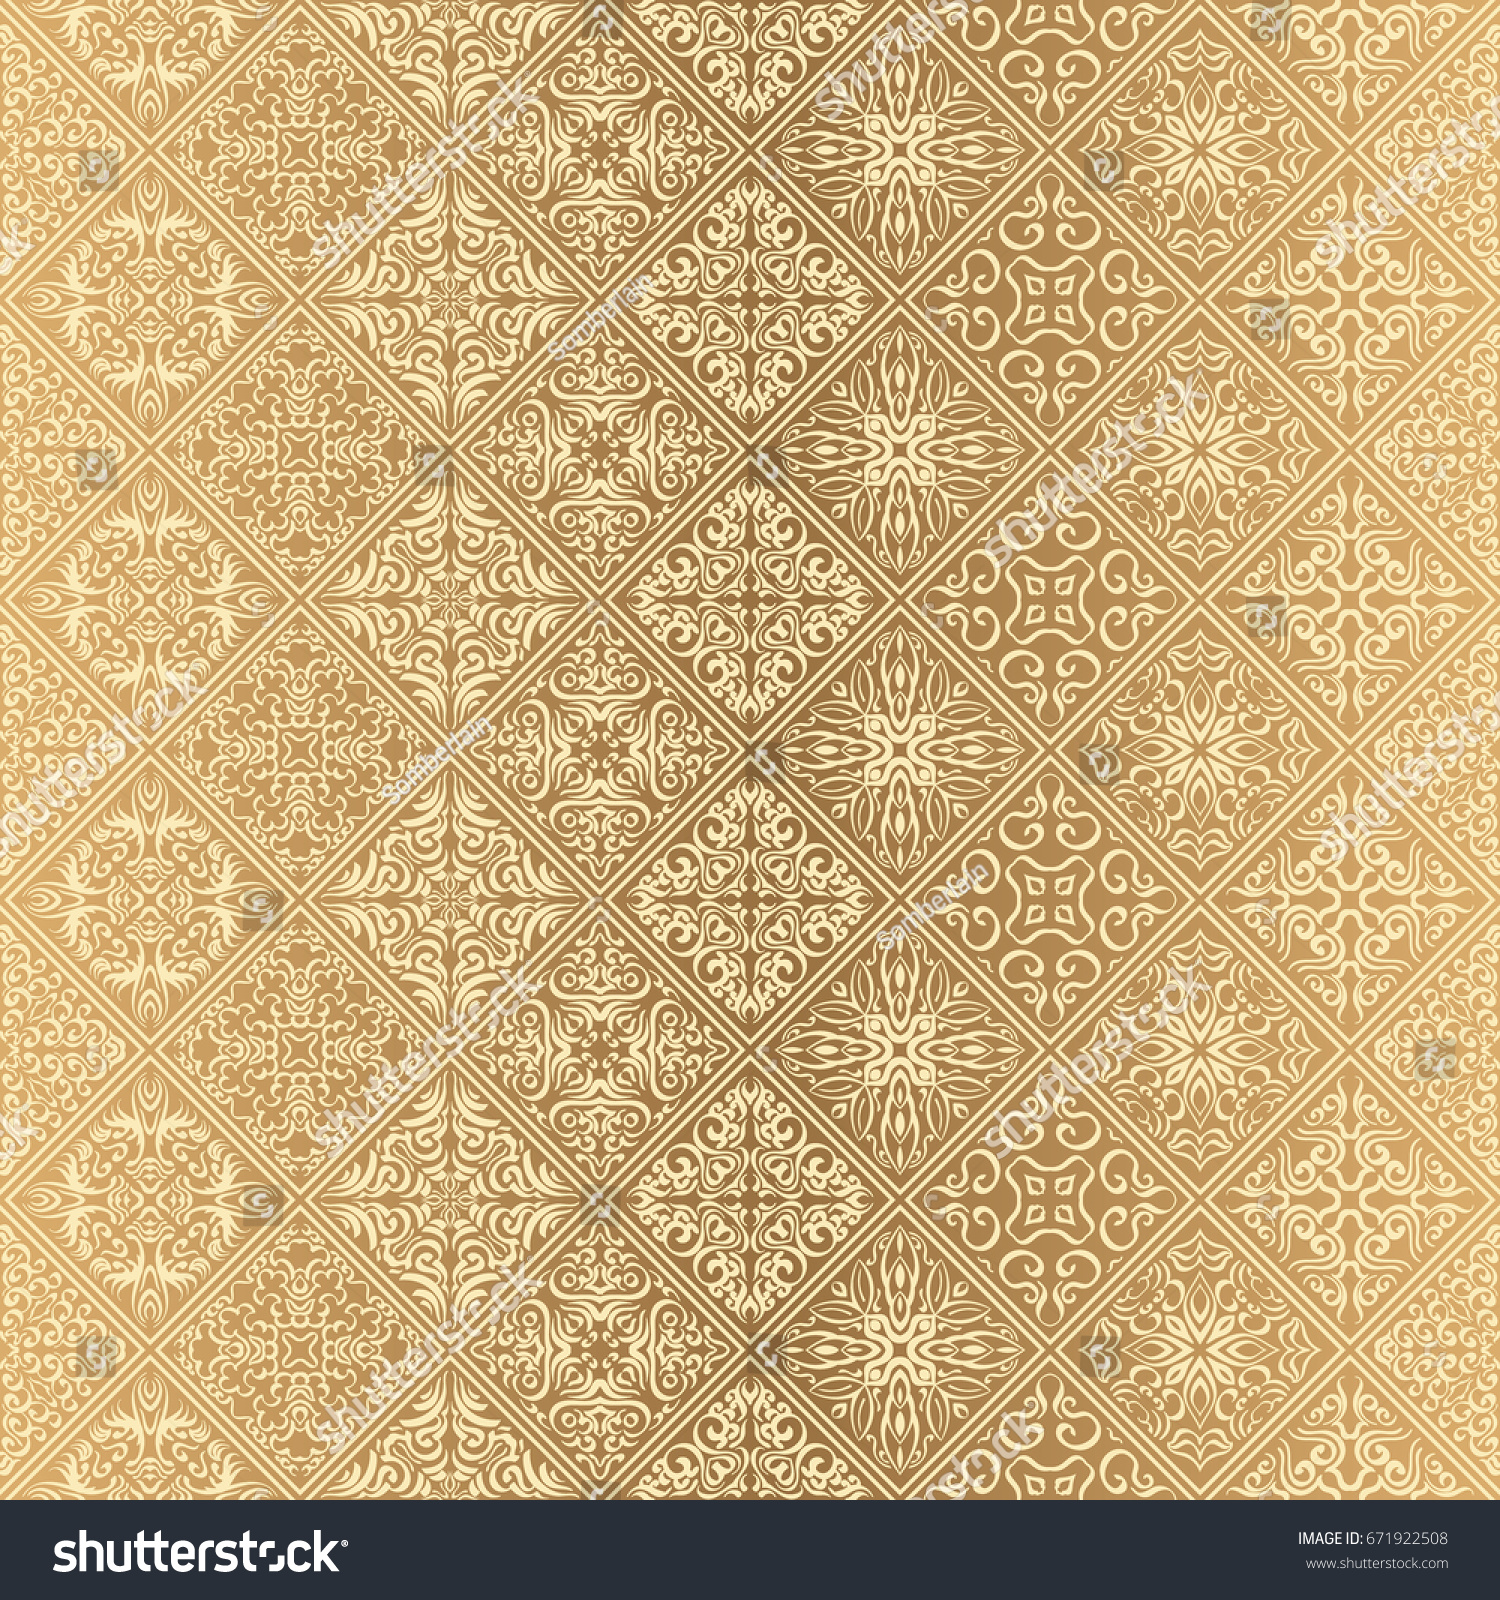 Royal Wallpaper Seamless Floral Pattern Luxury 671922508